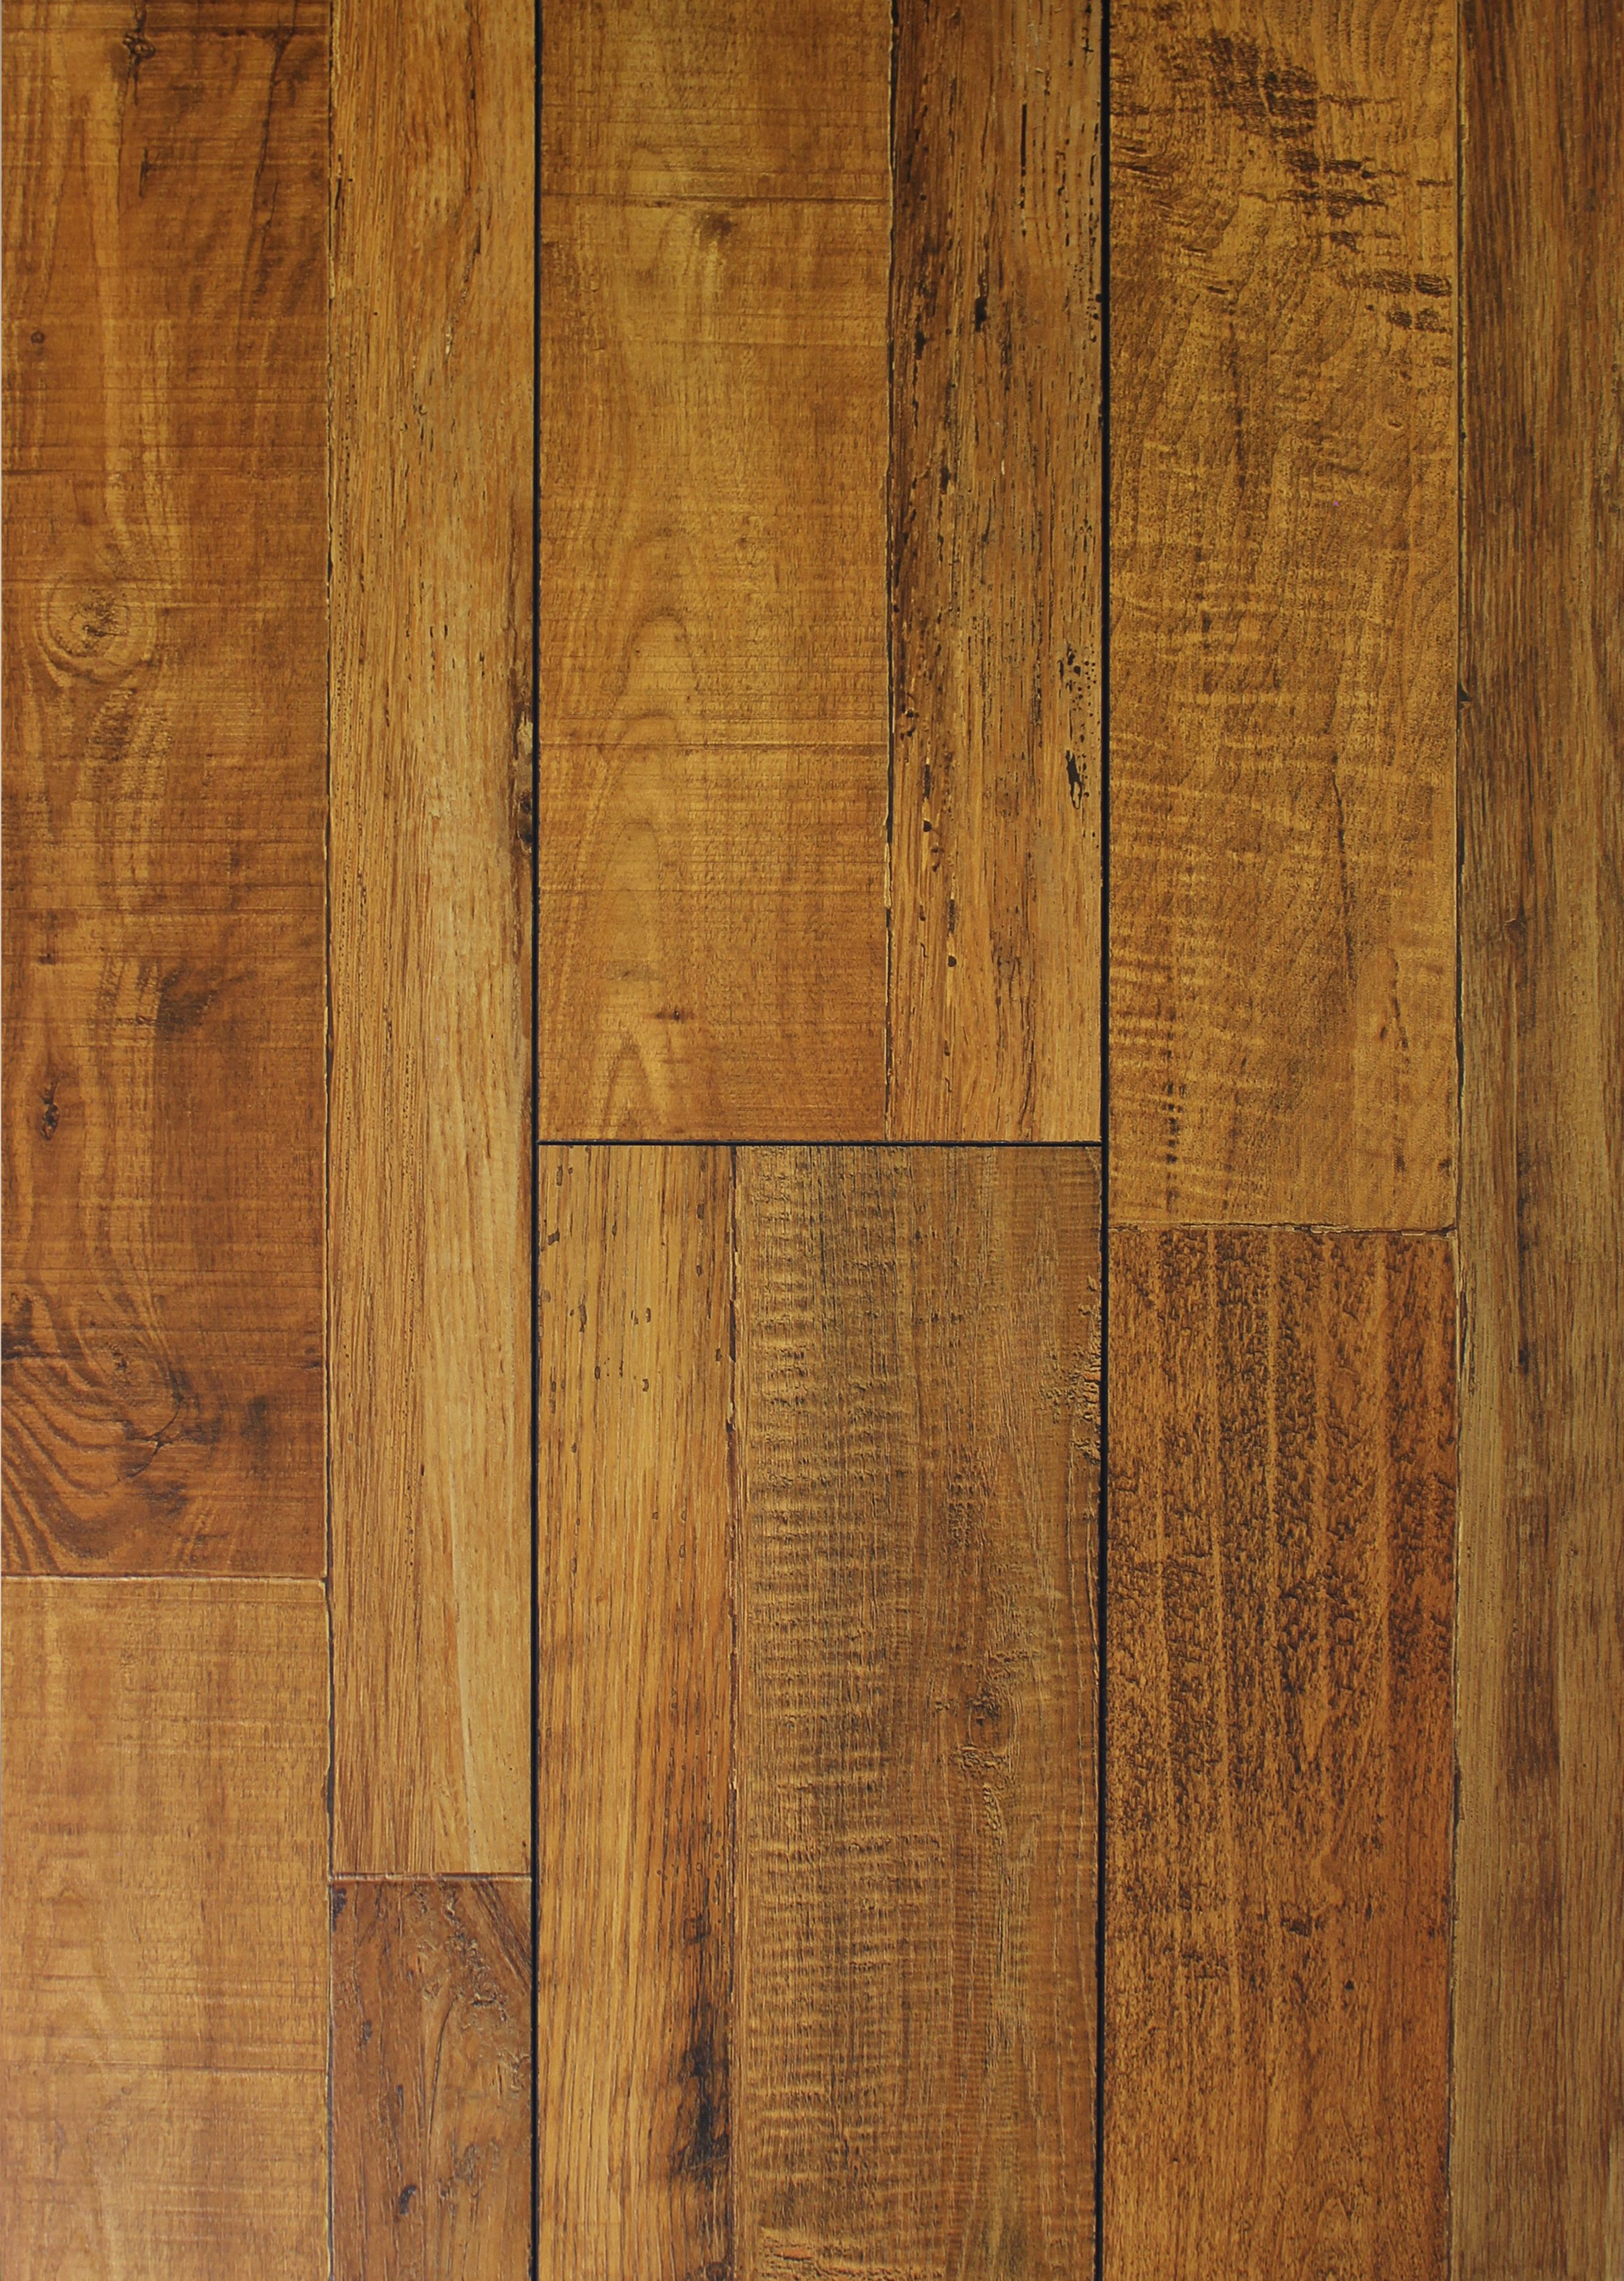 Hudson 1880 by knoas flooring 123mm laminate with a split hudson by knoas flooring laminate with a split width look plank interlocking floating floor for quick installation dailygadgetfo Gallery